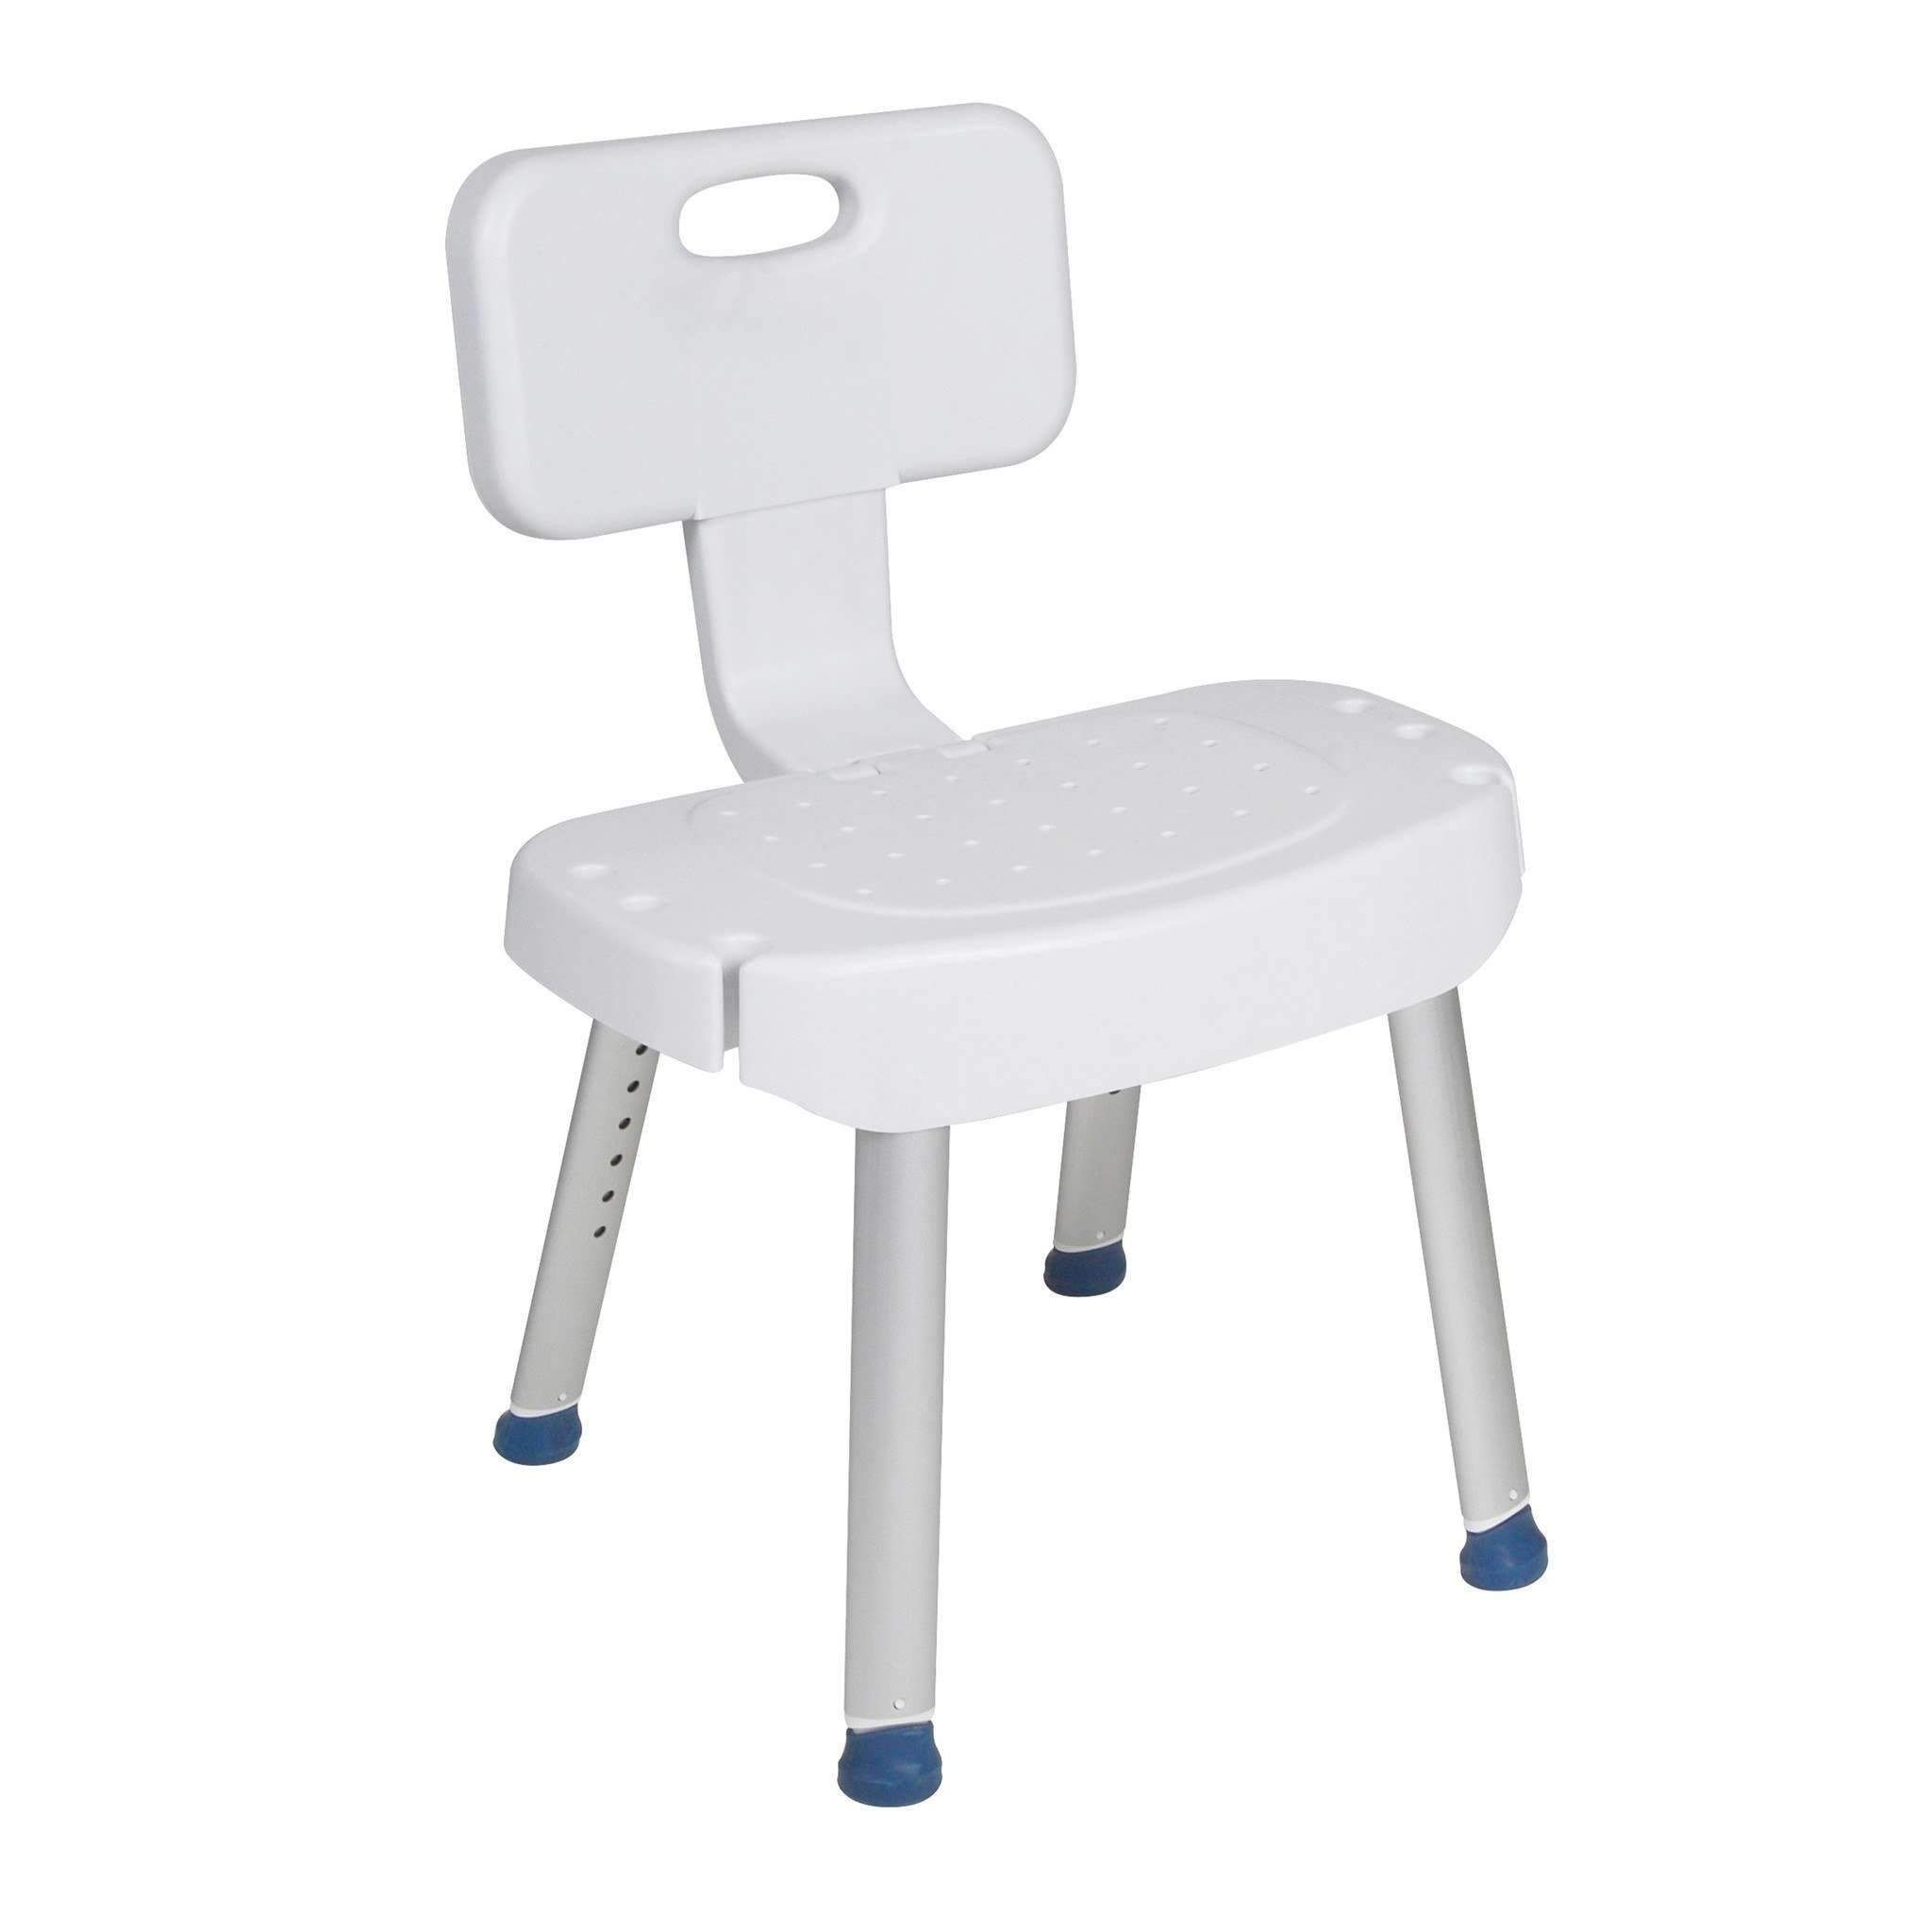 Bath Chair Lift Drive Medical Rtl12606 Bathroom Safety Shower Chair With Folding